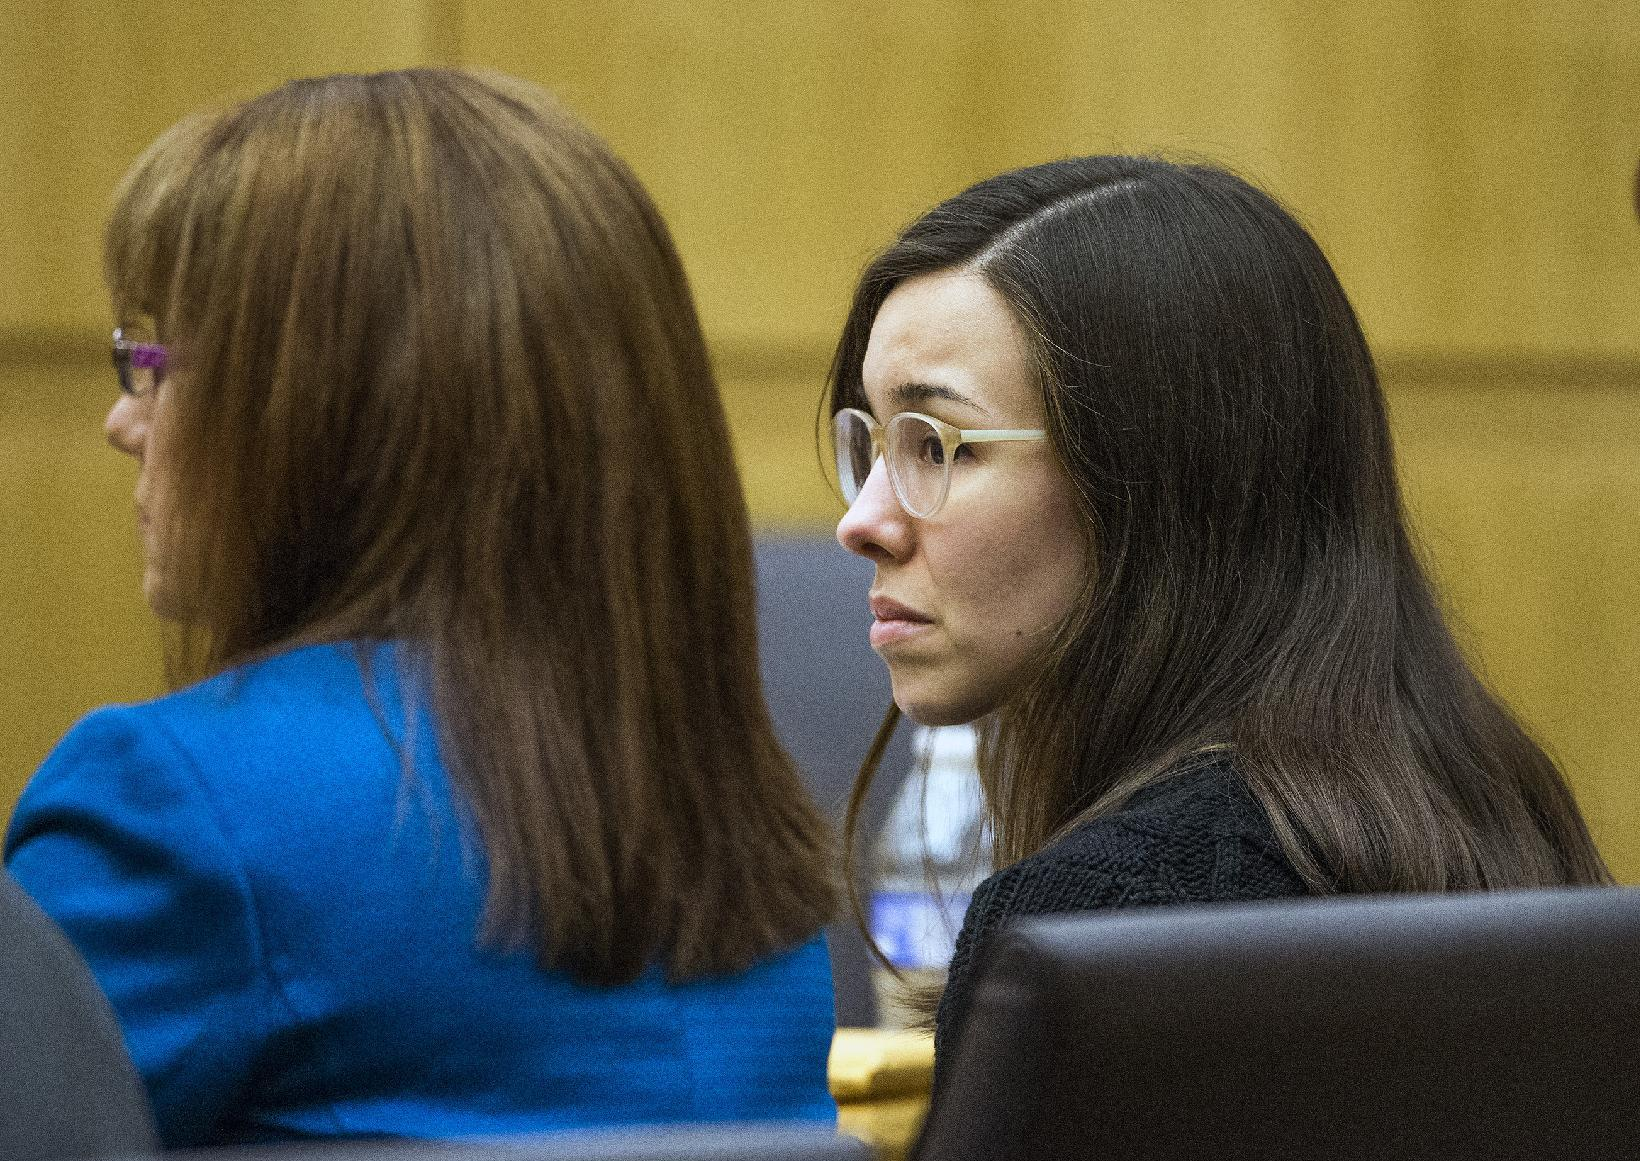 Authorities provide security for holdout juror in Arias case